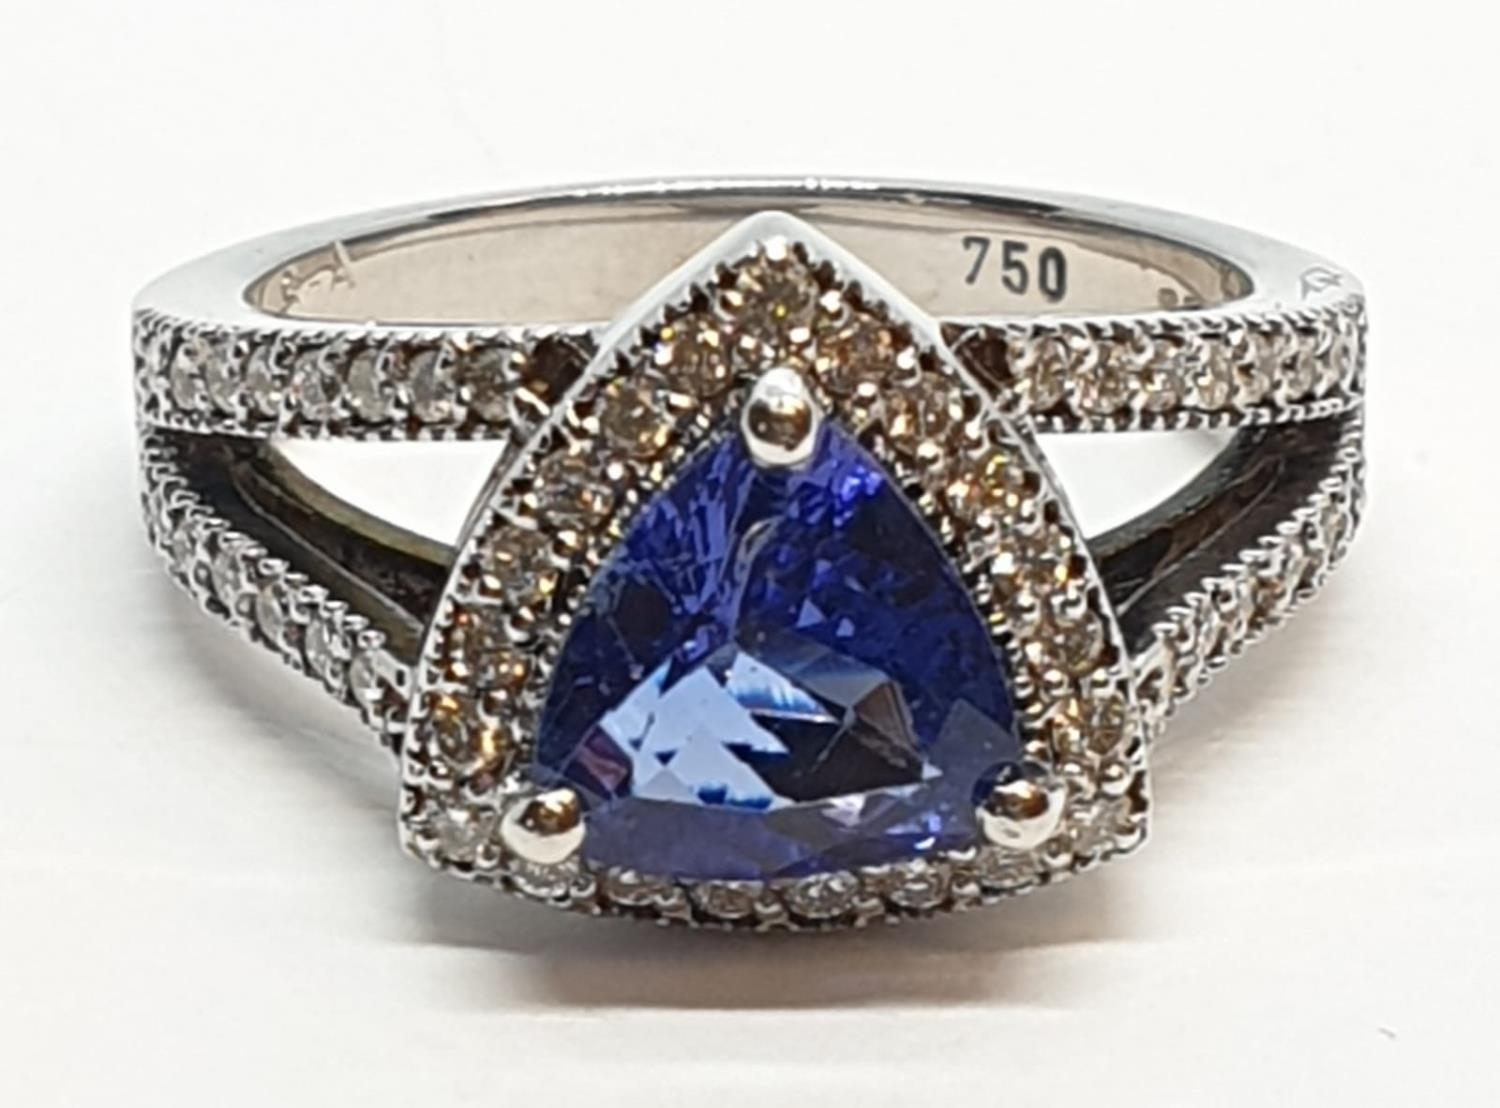 18CT WHITE GOLD RING WITH TRIANGULAR TANZANITE CENTRE AND DIAMONDS ON SHOULDERS, WEIGHT 7G AND